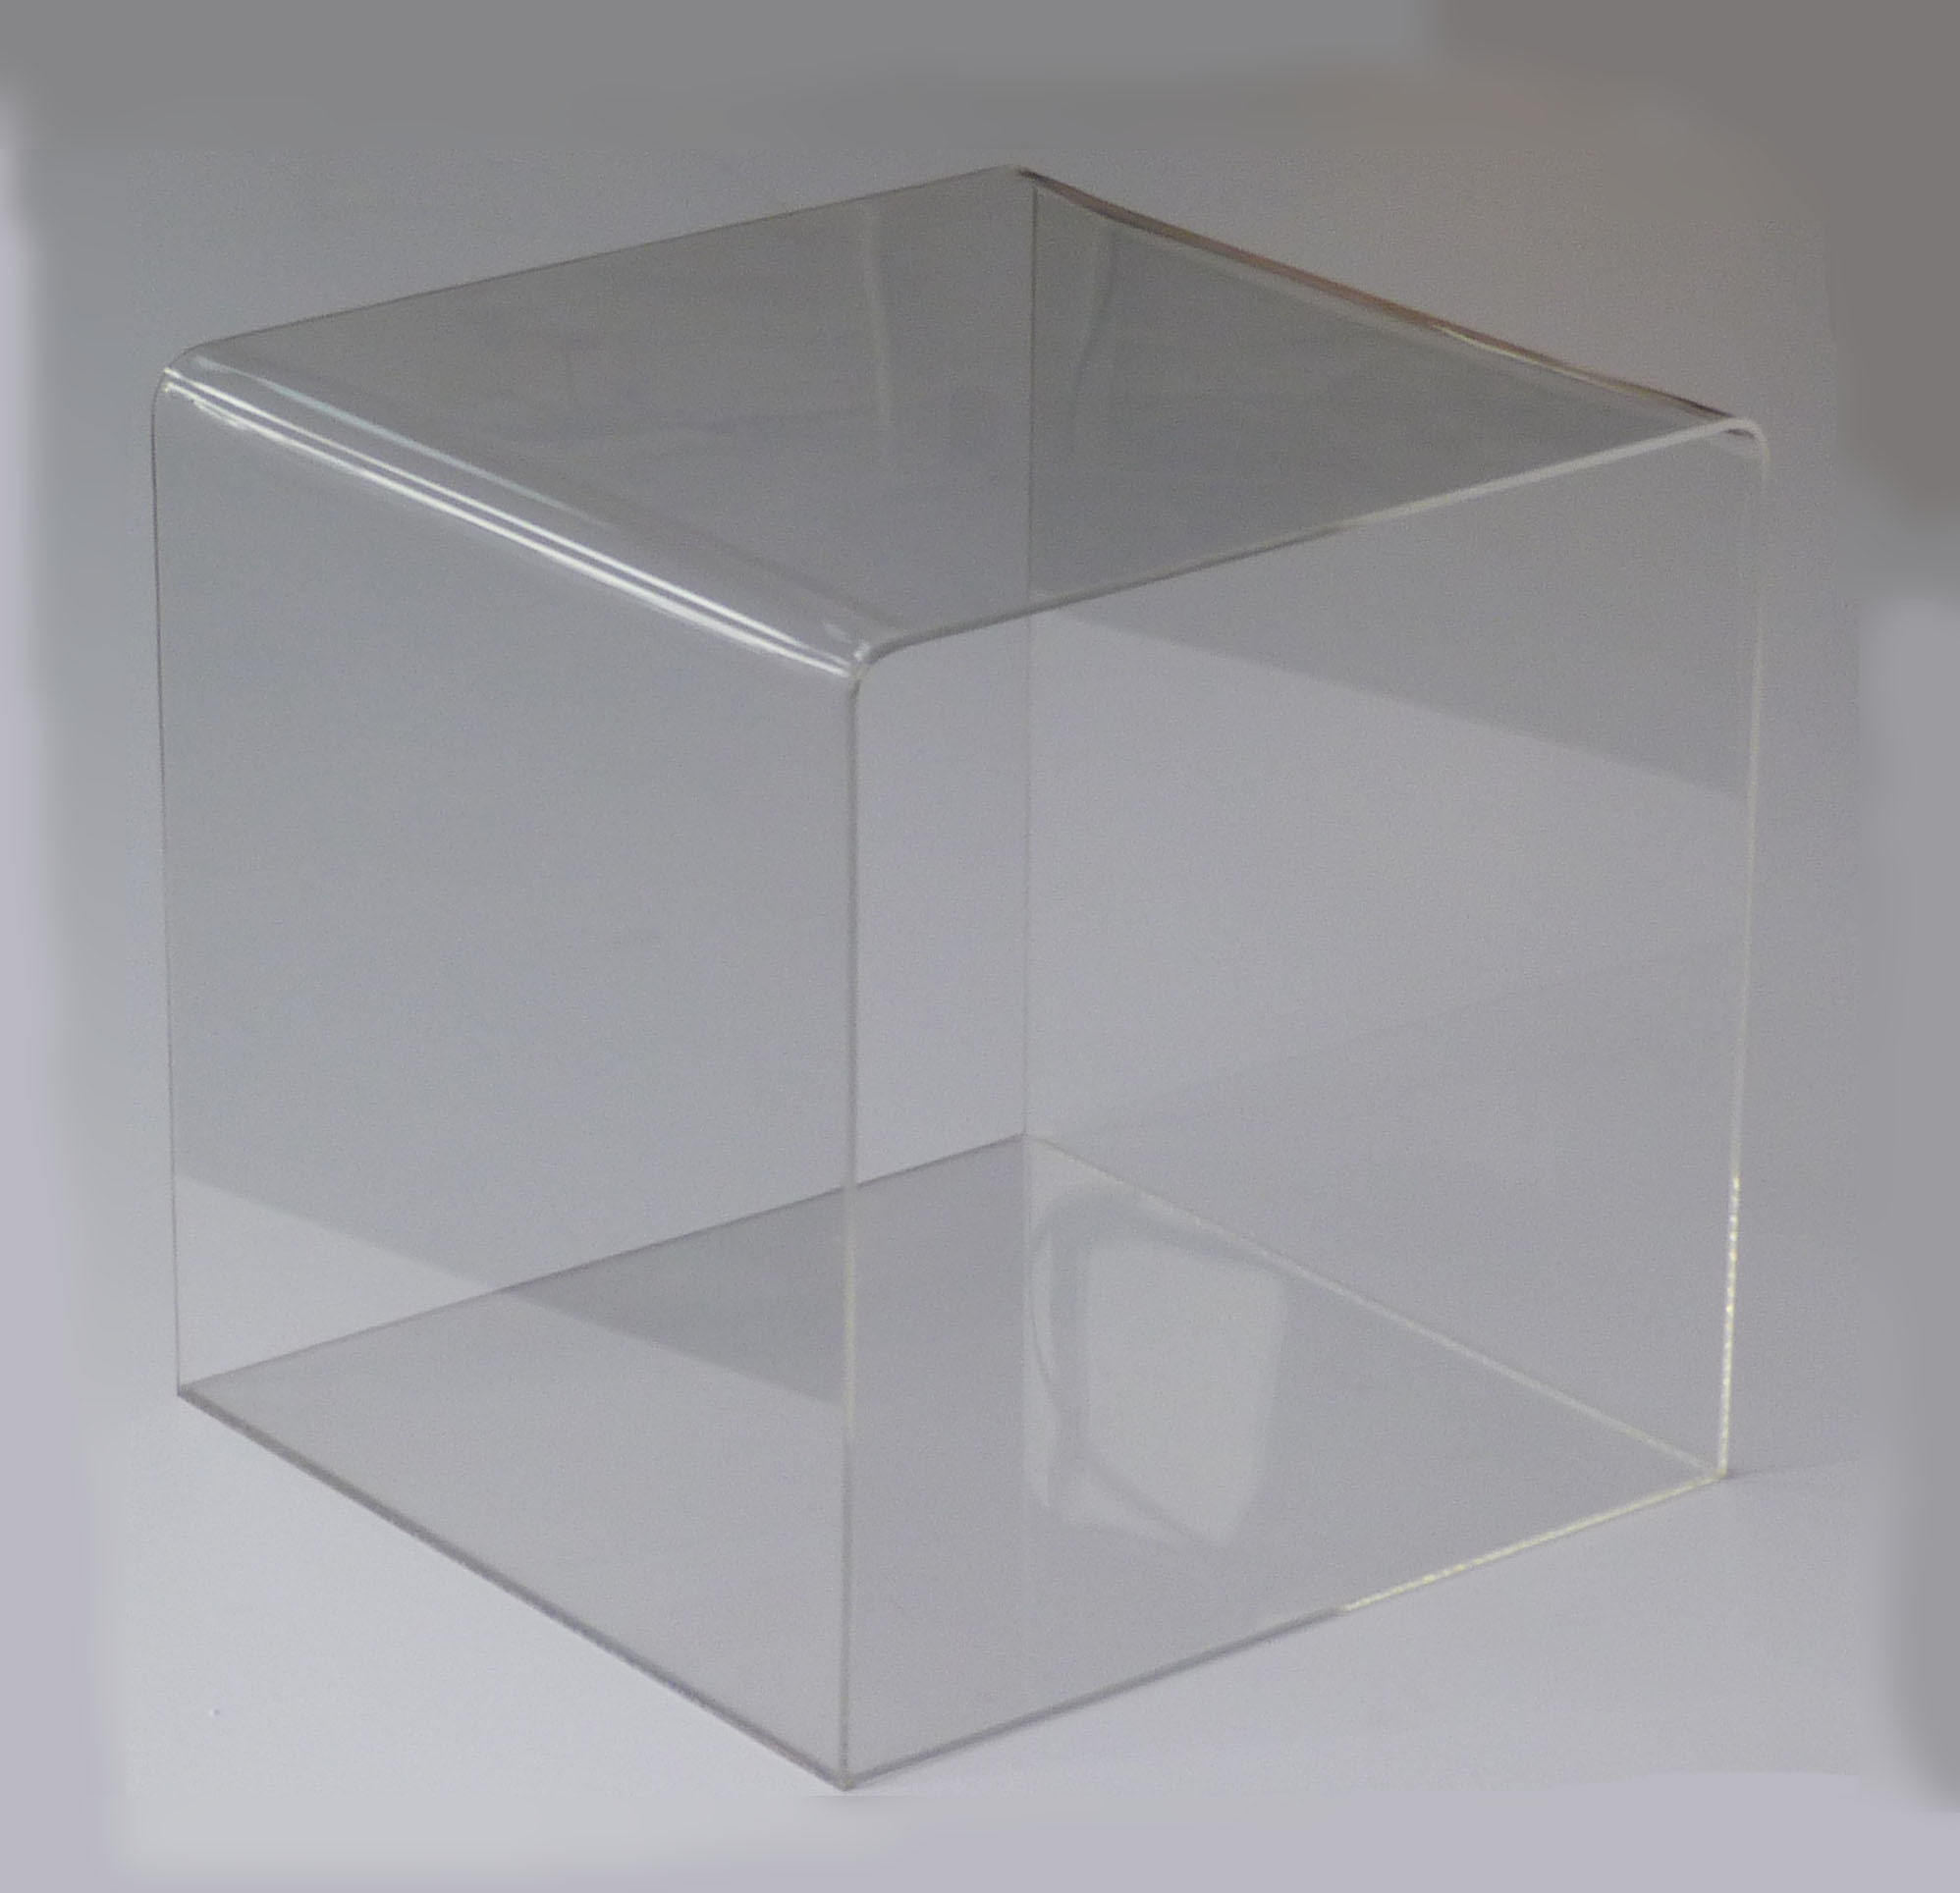 4 sided clear plexi acrylic transparent 12 cube display t shirts pants riser ebay. Black Bedroom Furniture Sets. Home Design Ideas